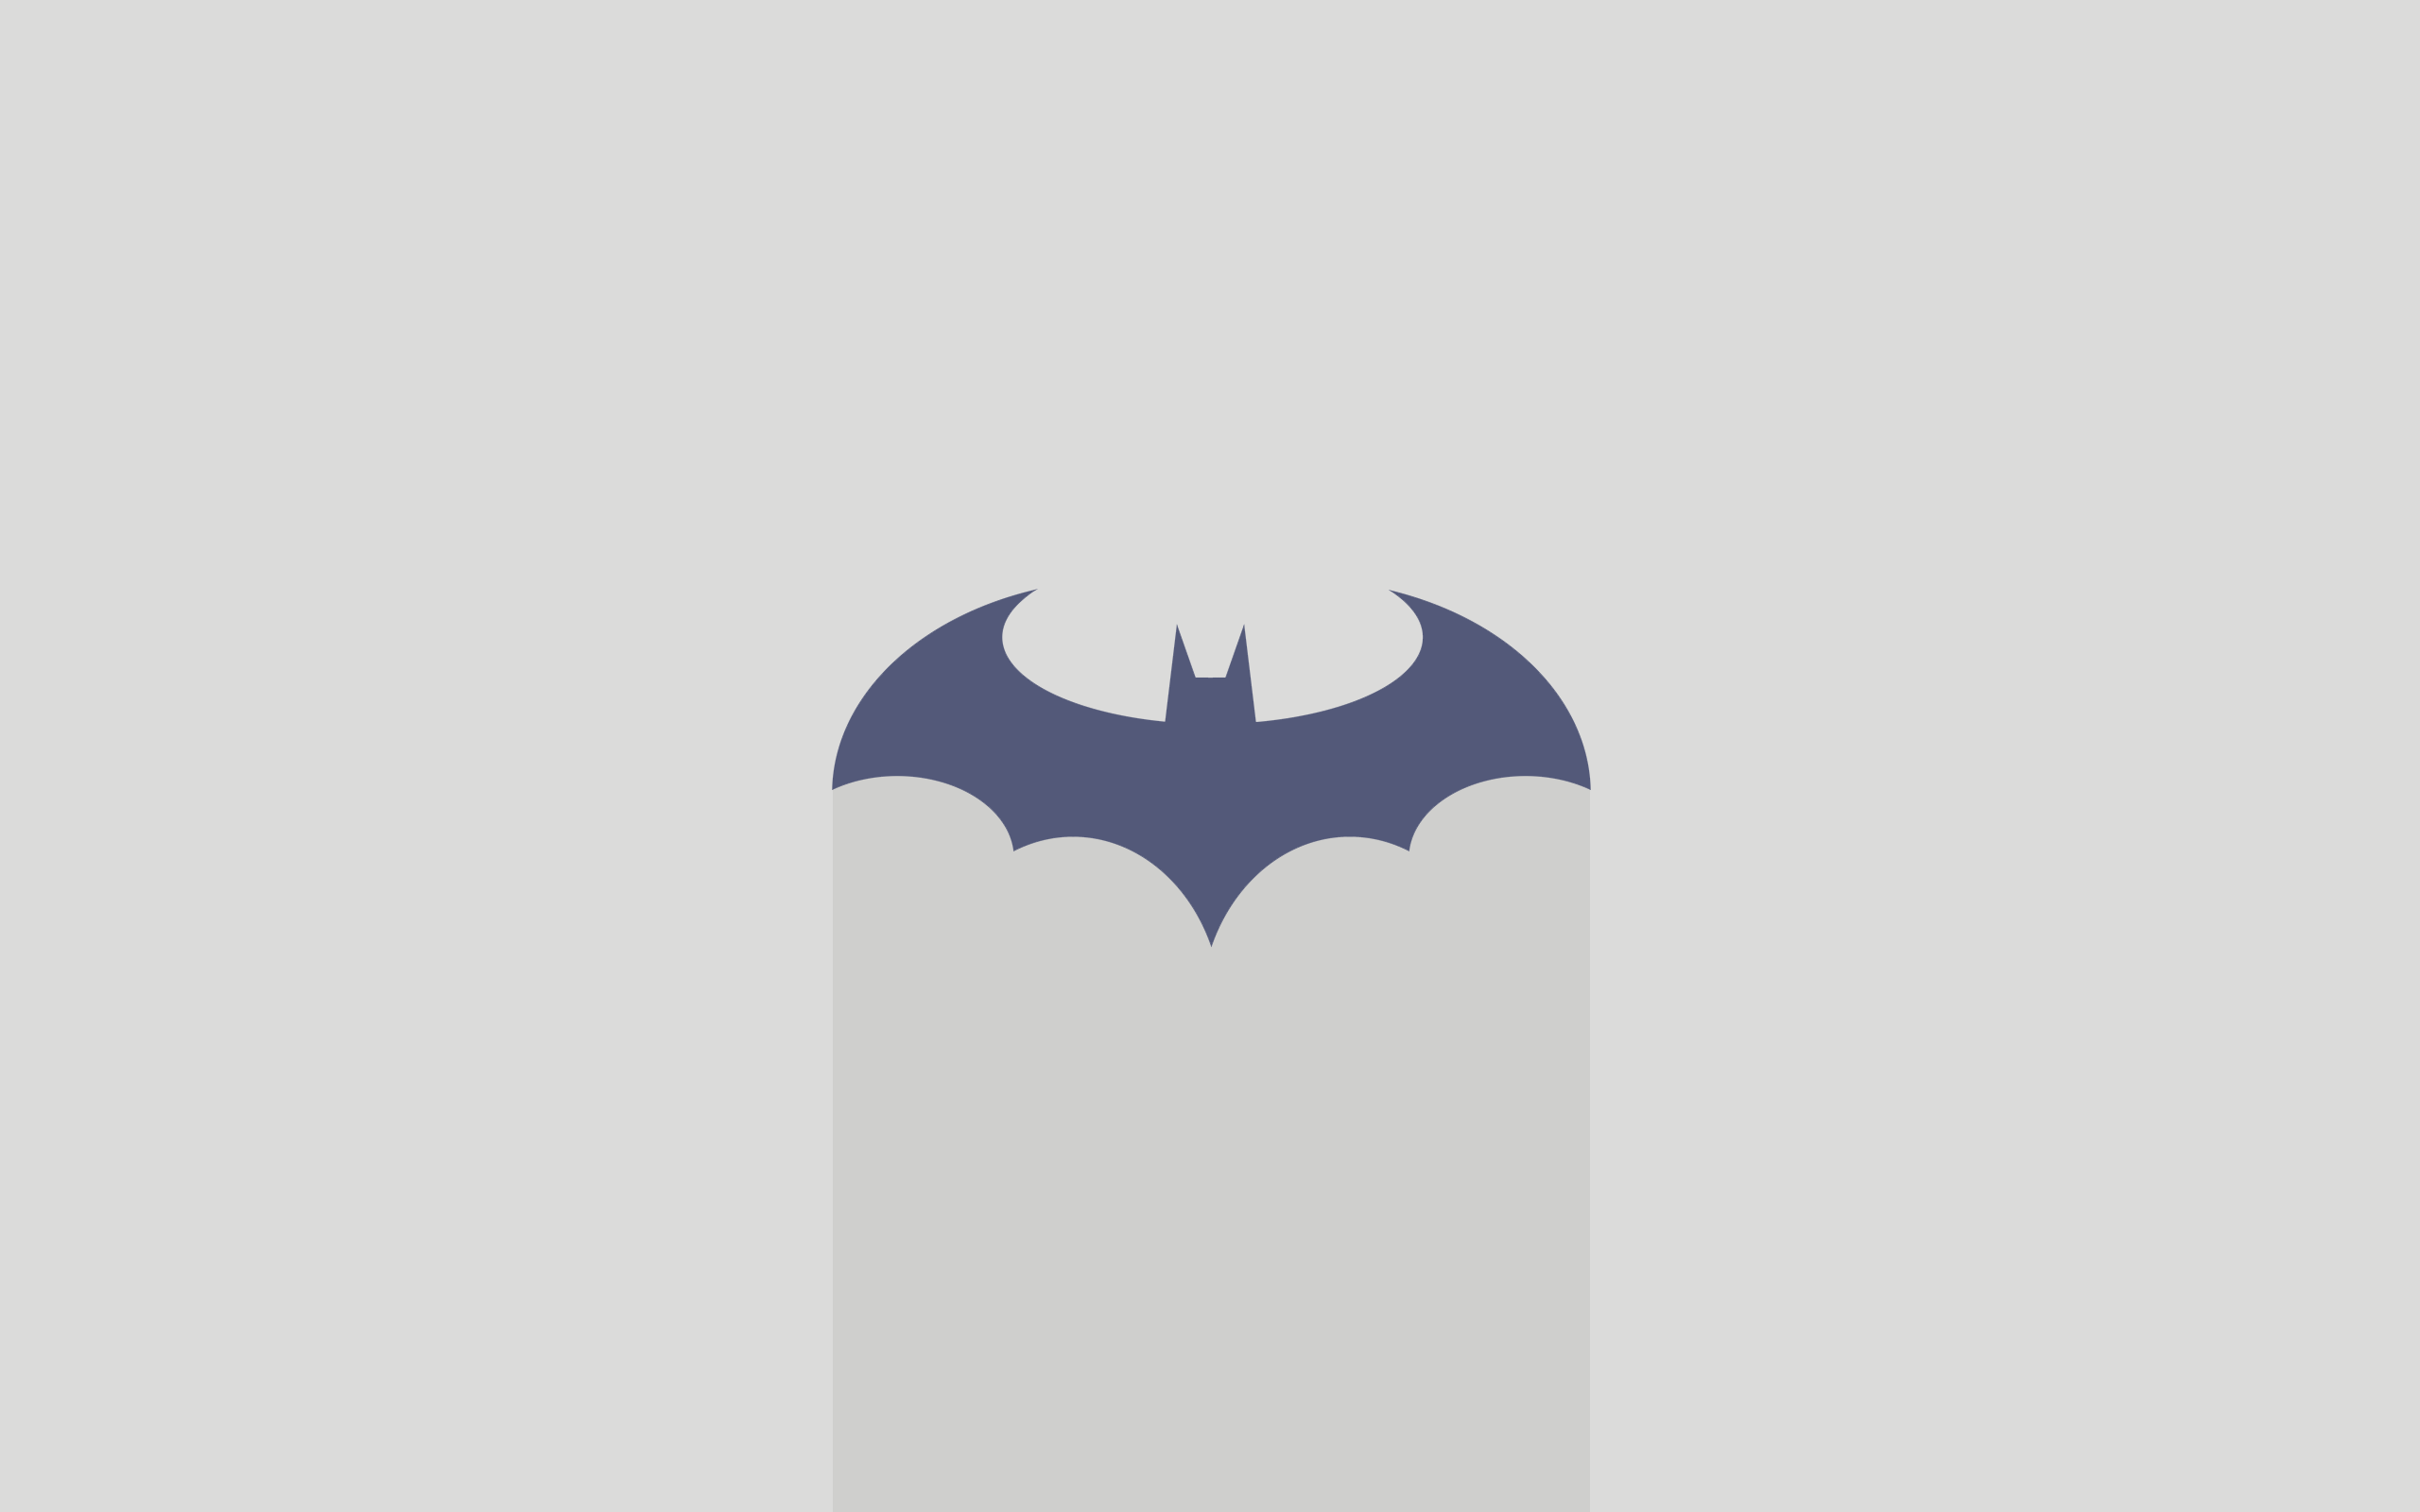 batman minimalist wallpaper download - photo #3